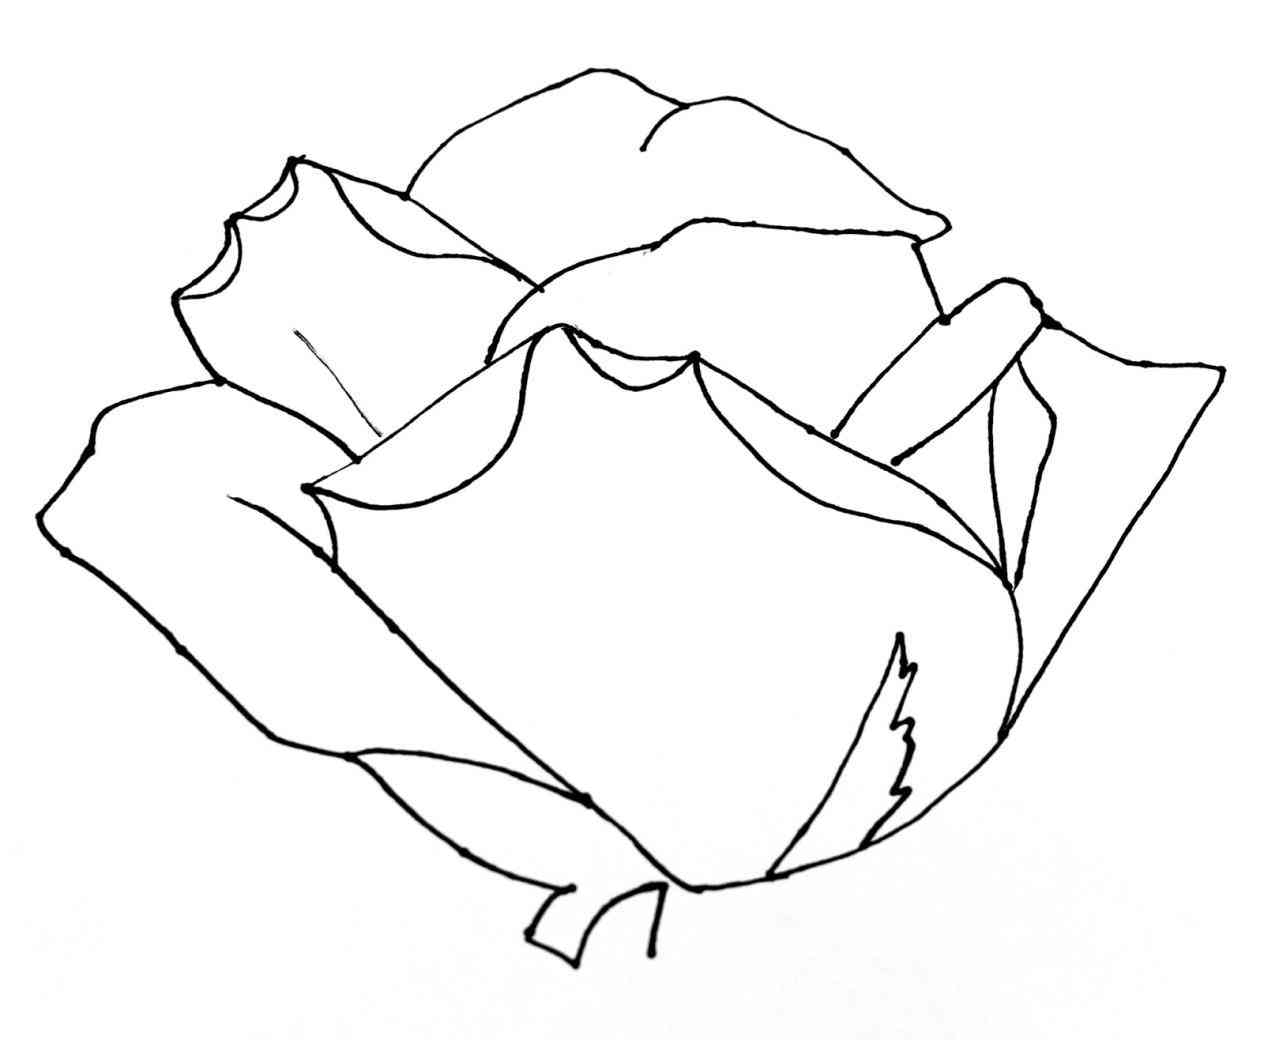 1264x1040 Drawing Easy Pictures Of Roses To Draw A Rose In Simple Stencil